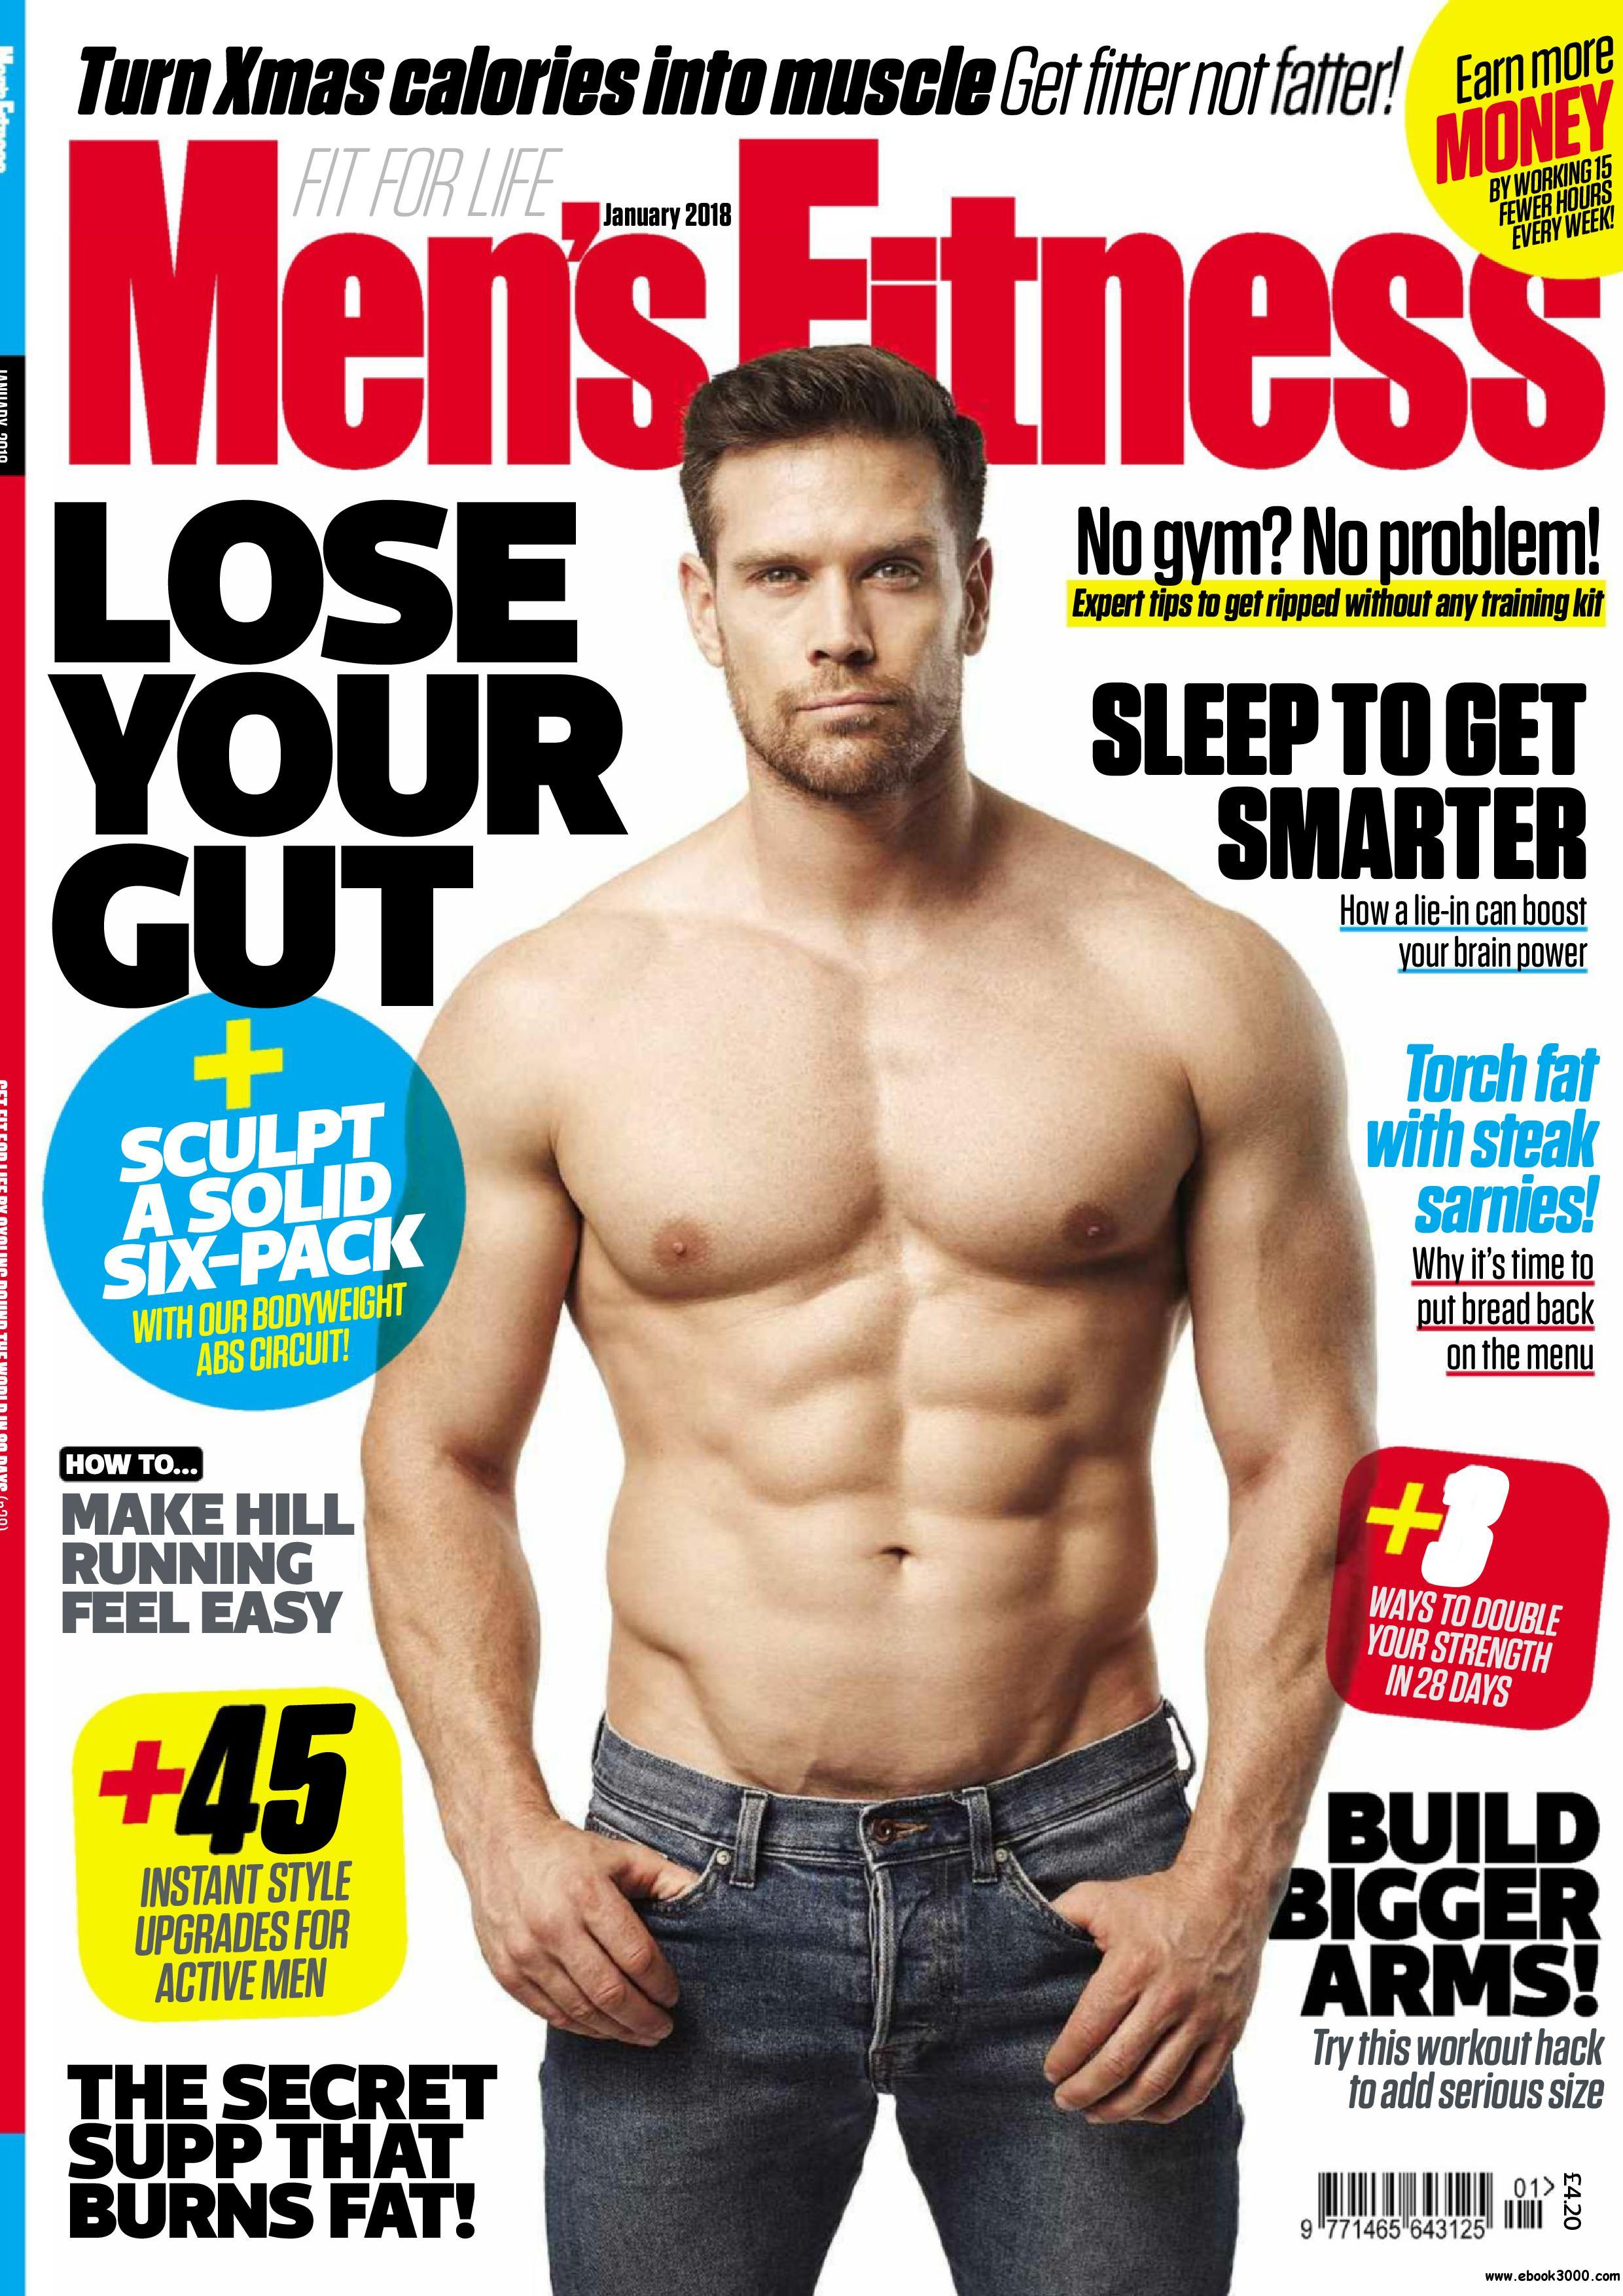 Are Health and Fitness Magazines for Men Only for Straight